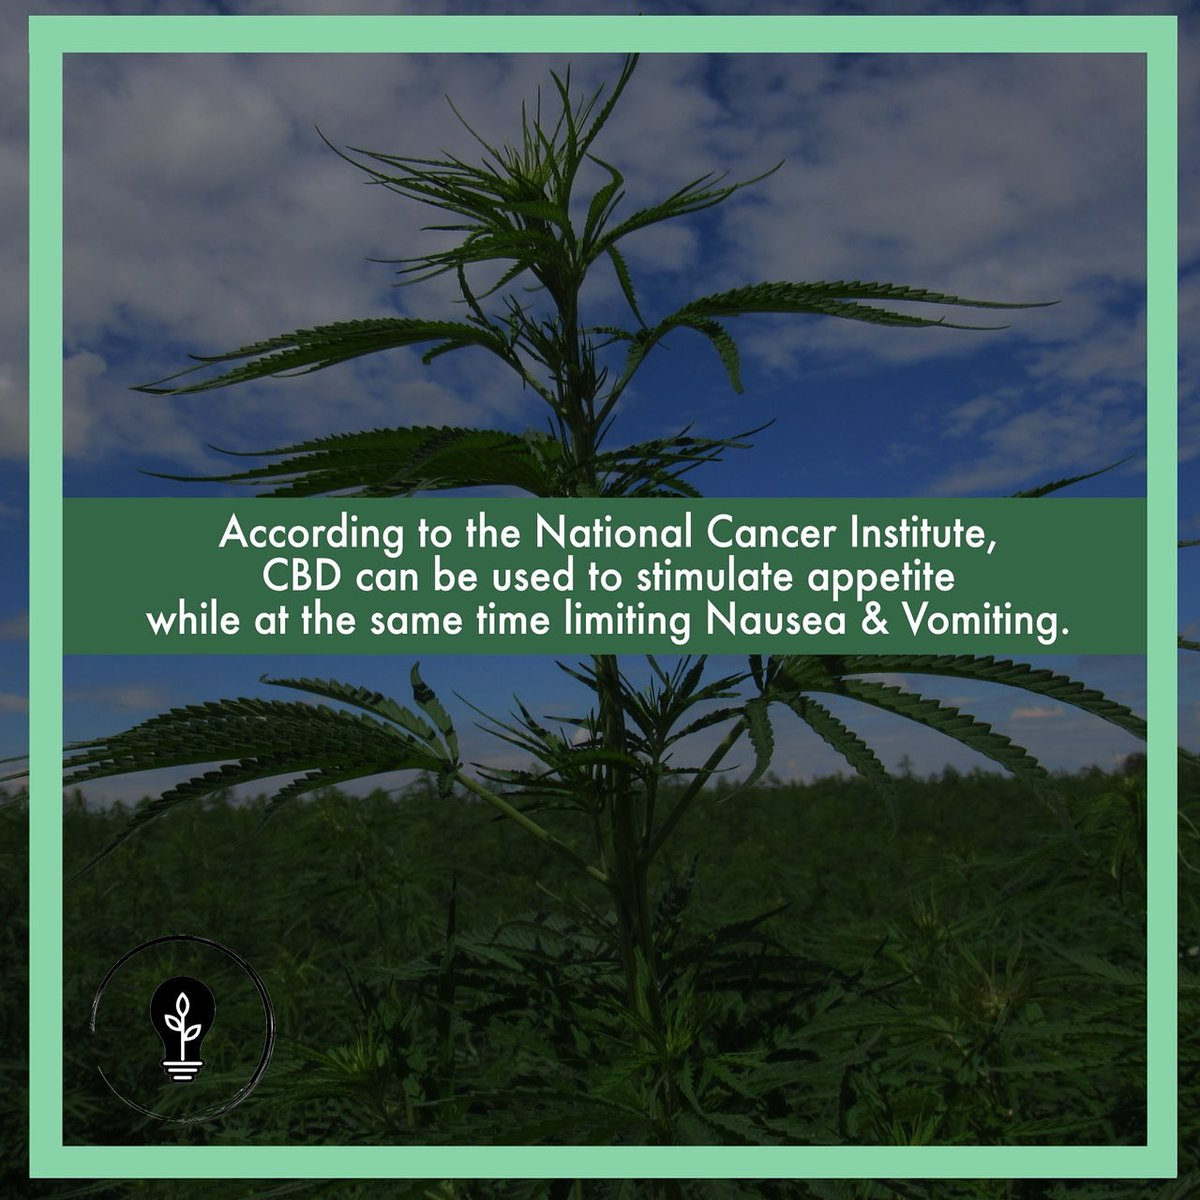 🤔Did you know, according to the #National #Cancer #Institute #CBD can be used to #stimulate #appetite while at the same time limiting #nausea & #vomiting?💡 https://t.co/gij2rHI6sn